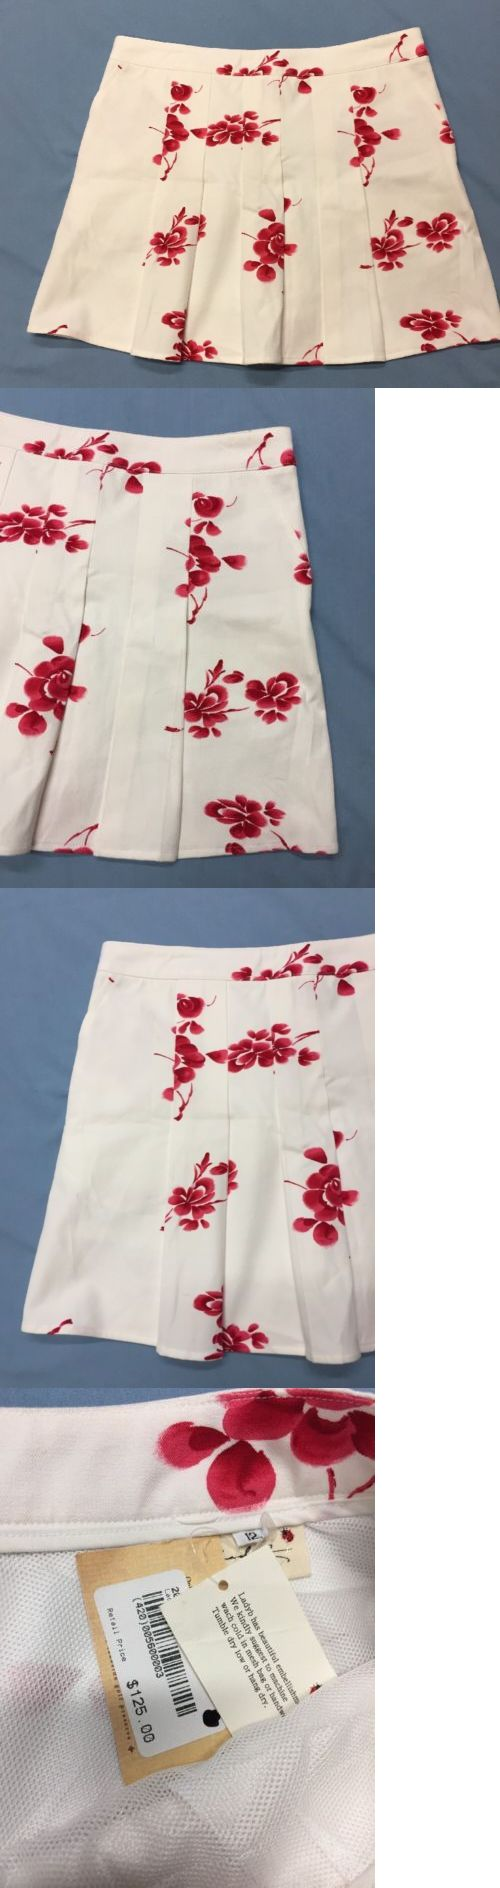 Skirts Skorts and Dresses 179003: Lady B Womens Golf Skort (12, White, Red Floral Pattern, Polyester)(Nwt) -> BUY IT NOW ONLY: $58.7 on eBay!